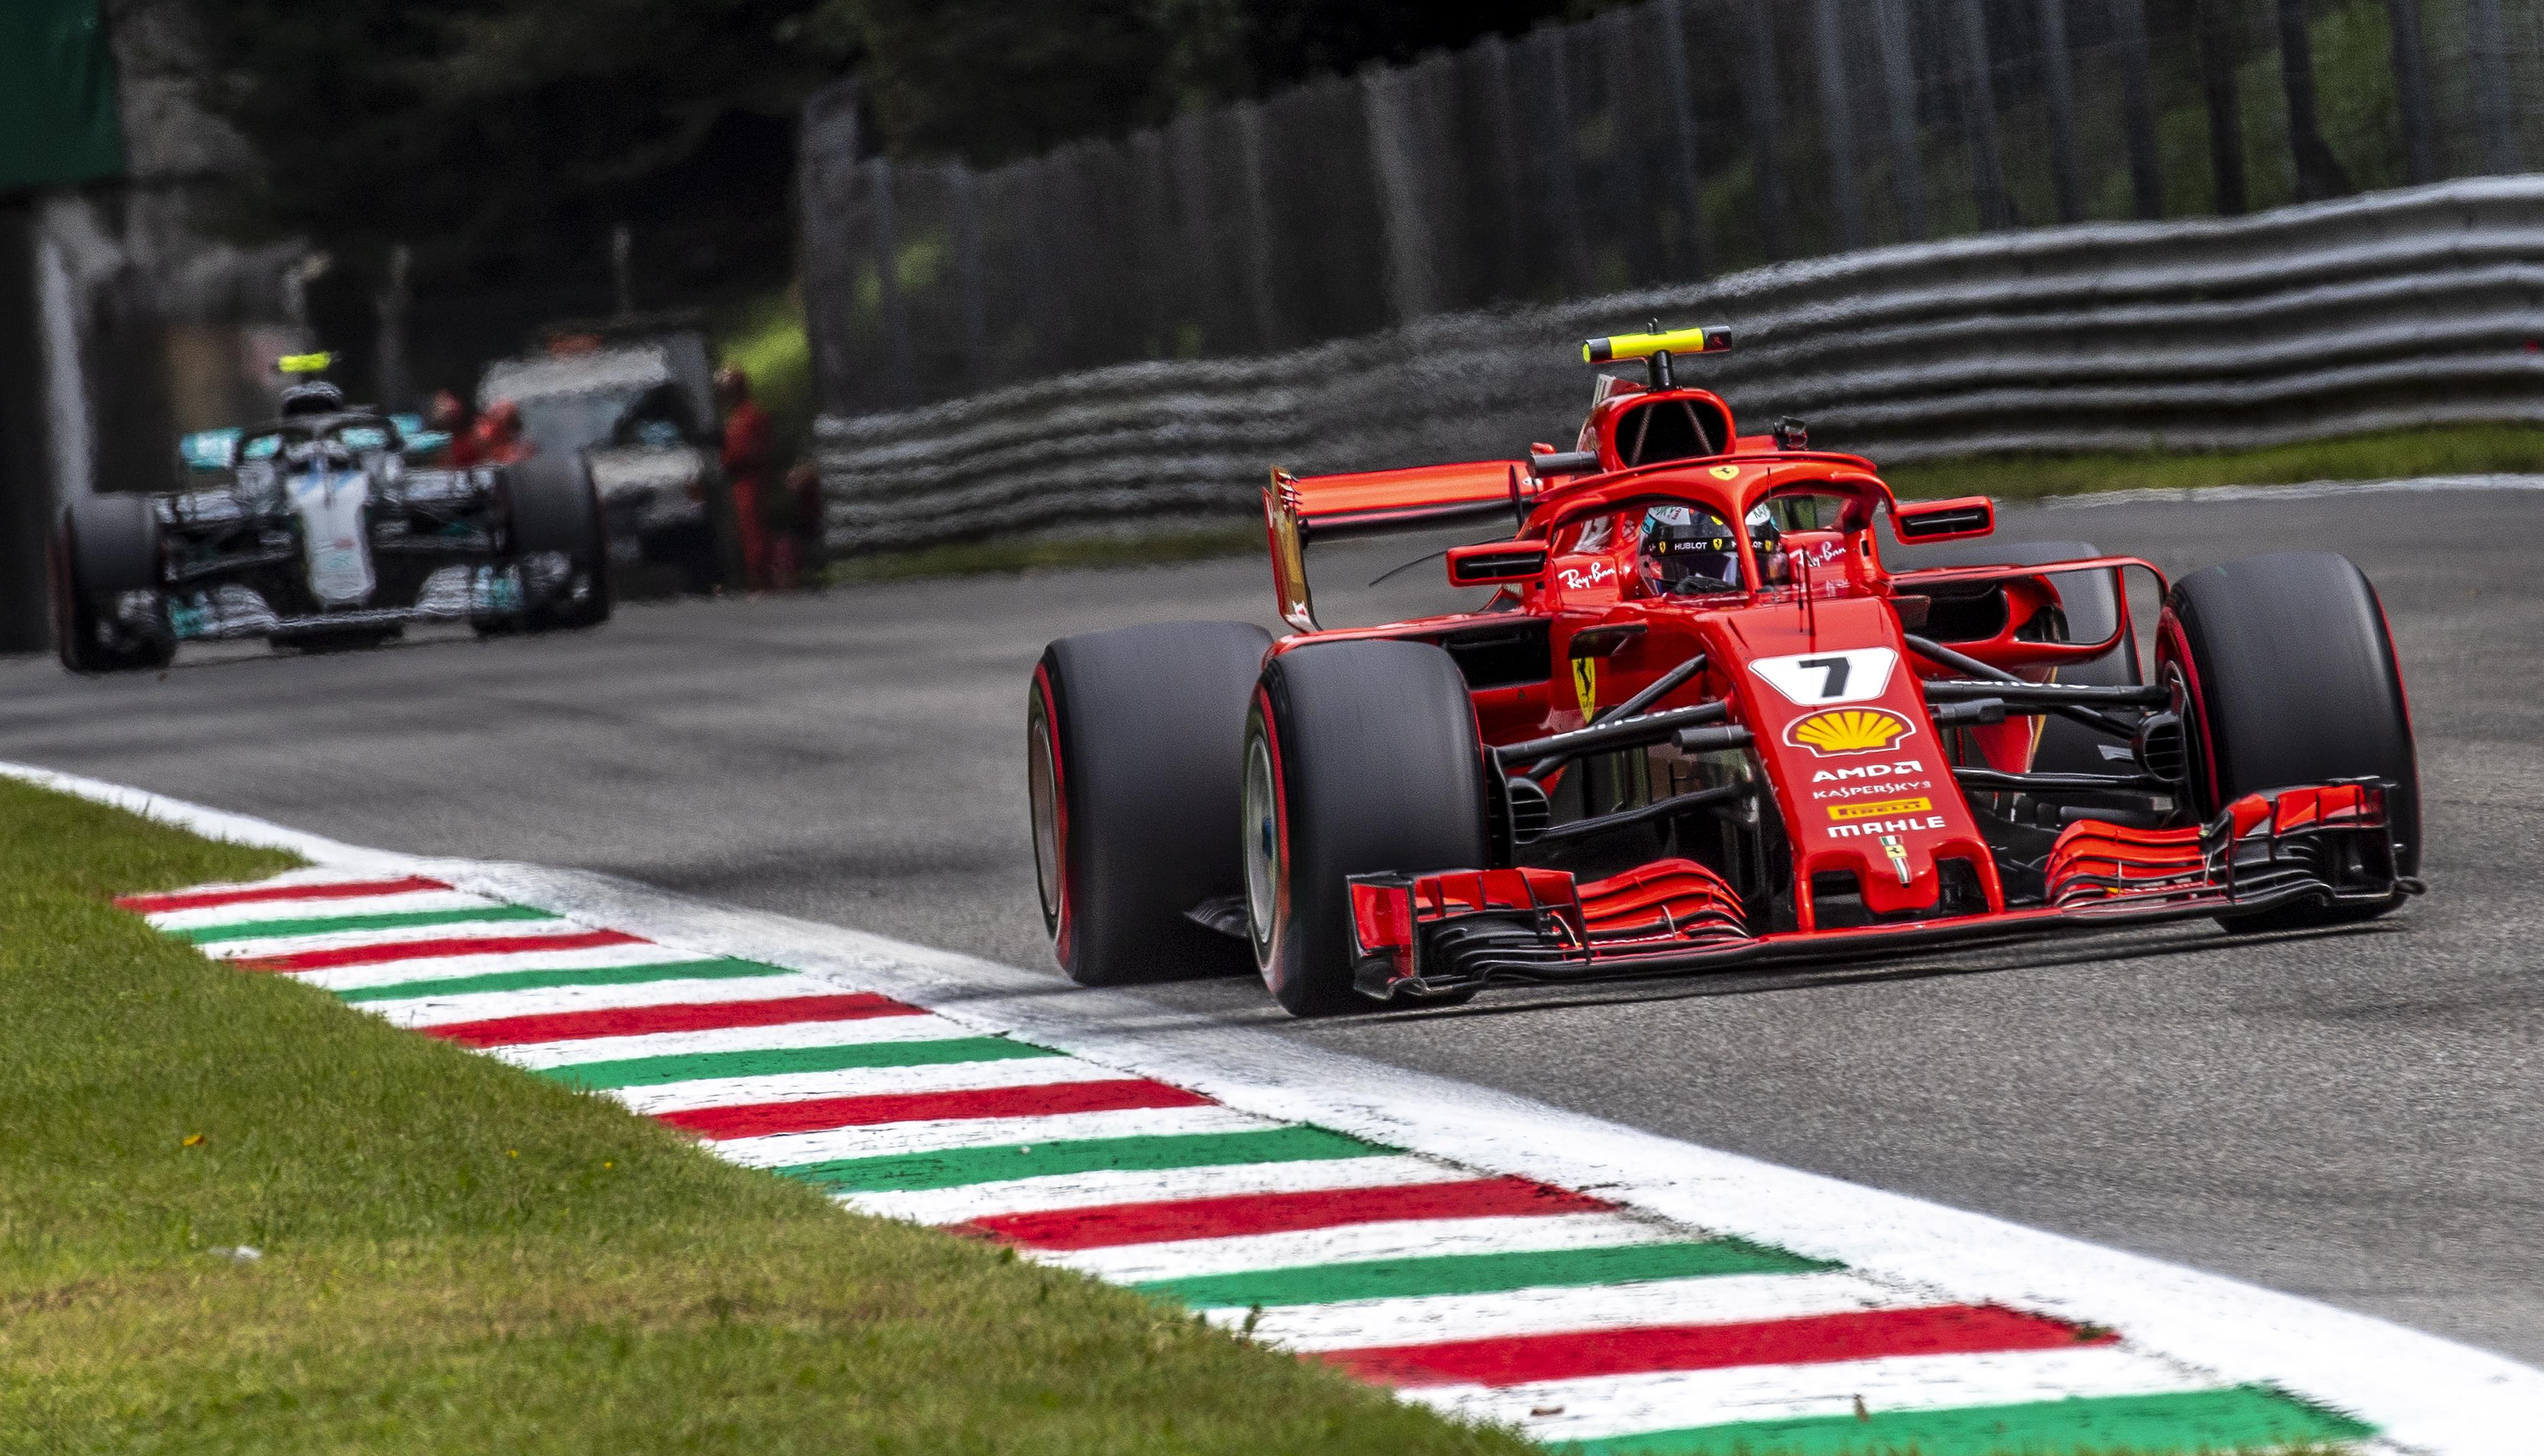 Kimi Raikkonen finished quickest to take pole in the Italian GP qualifying